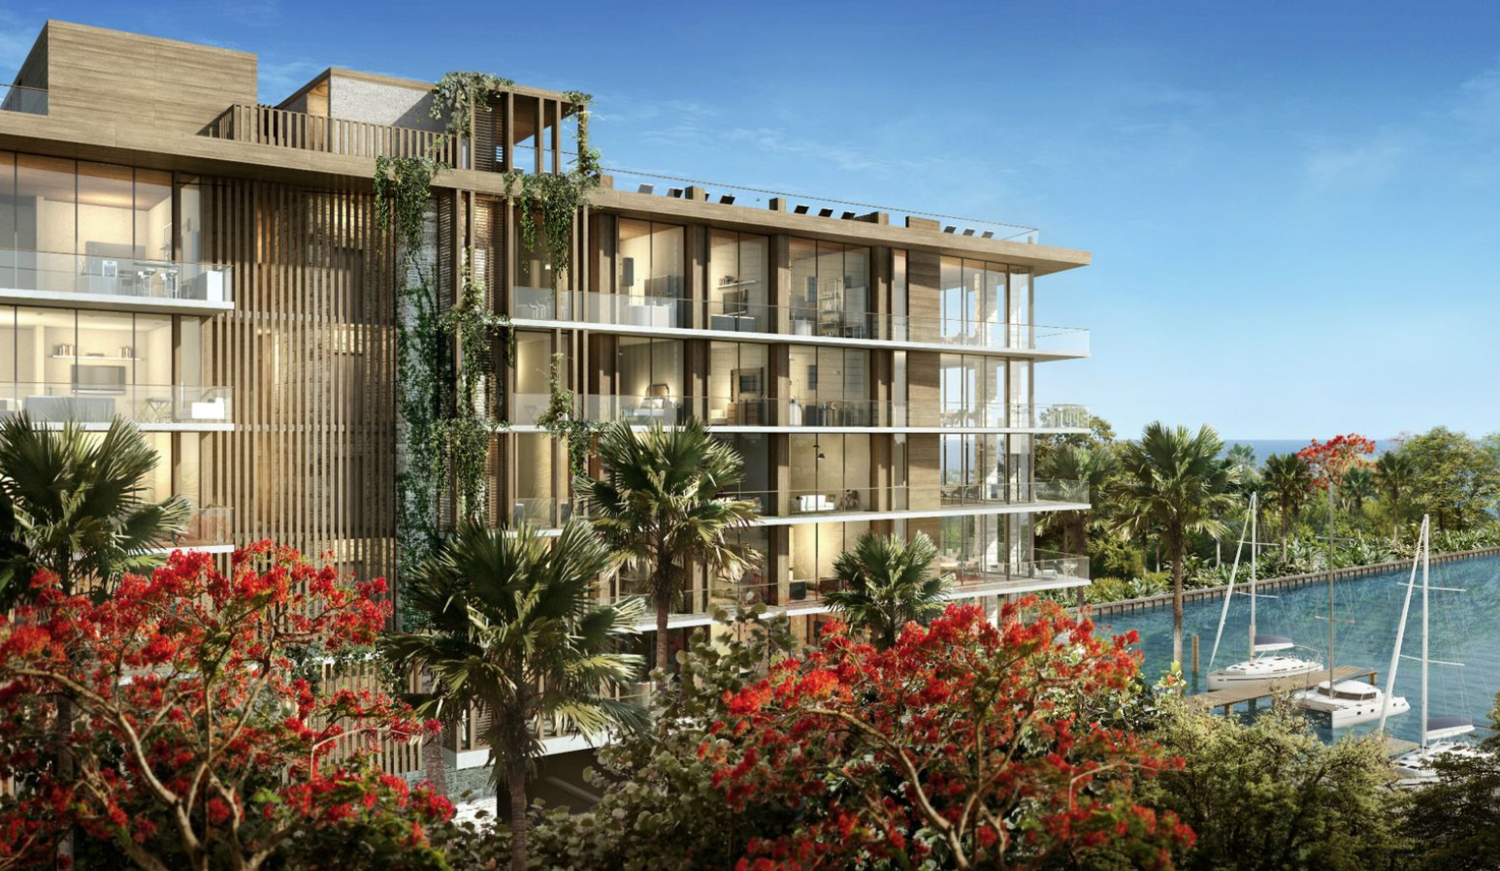 Two Penthouse Residences at The Fairchild Coconut Grove Sell for a Total $8.5 Million